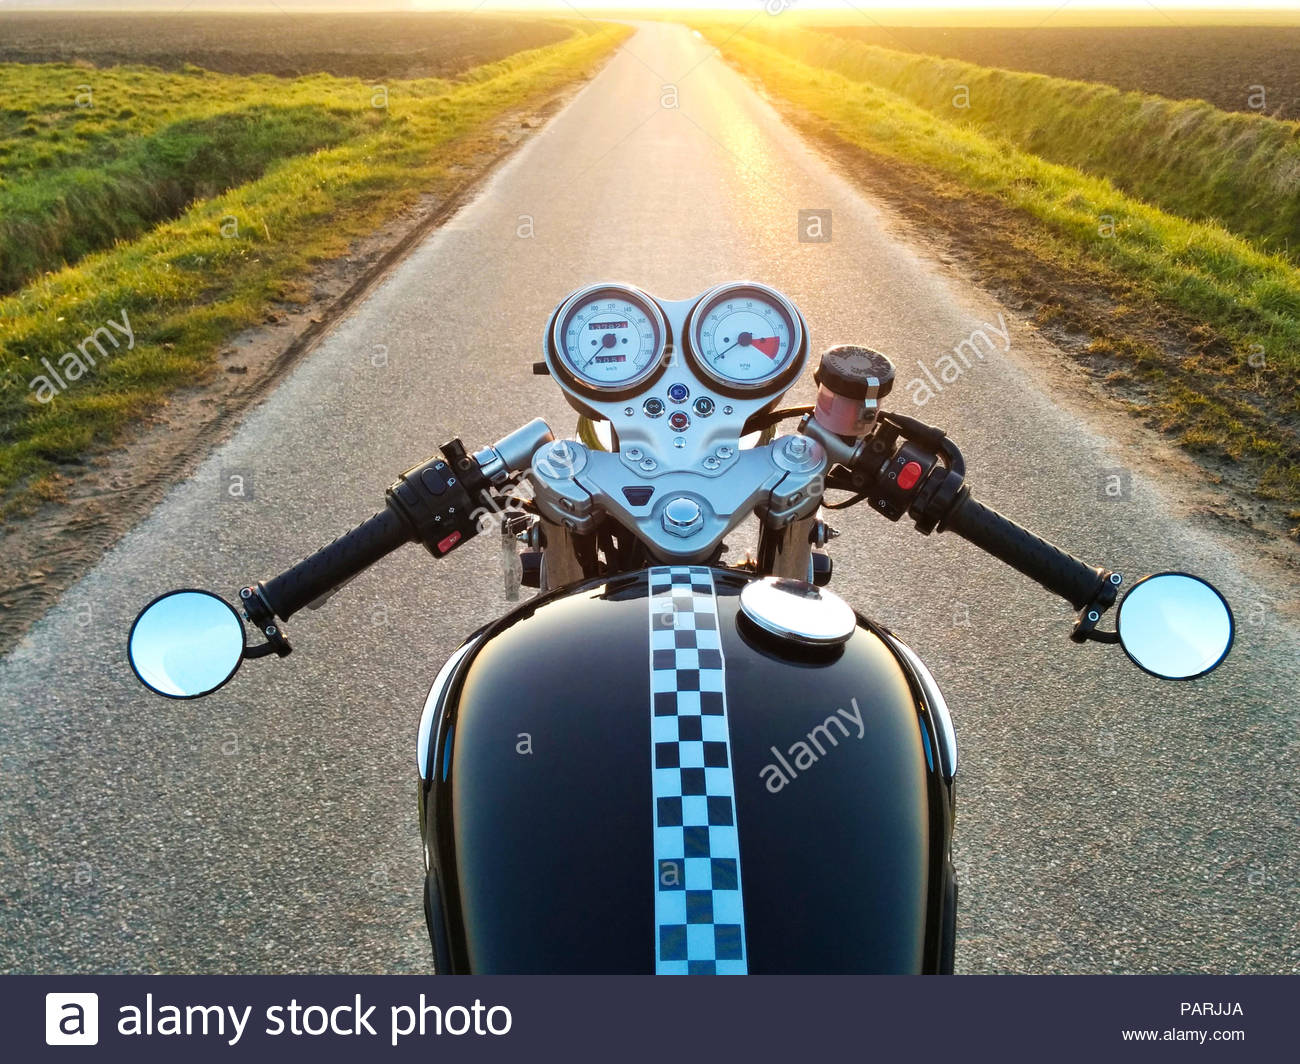 Close-up shot of a bicycle on a road - Stock Image